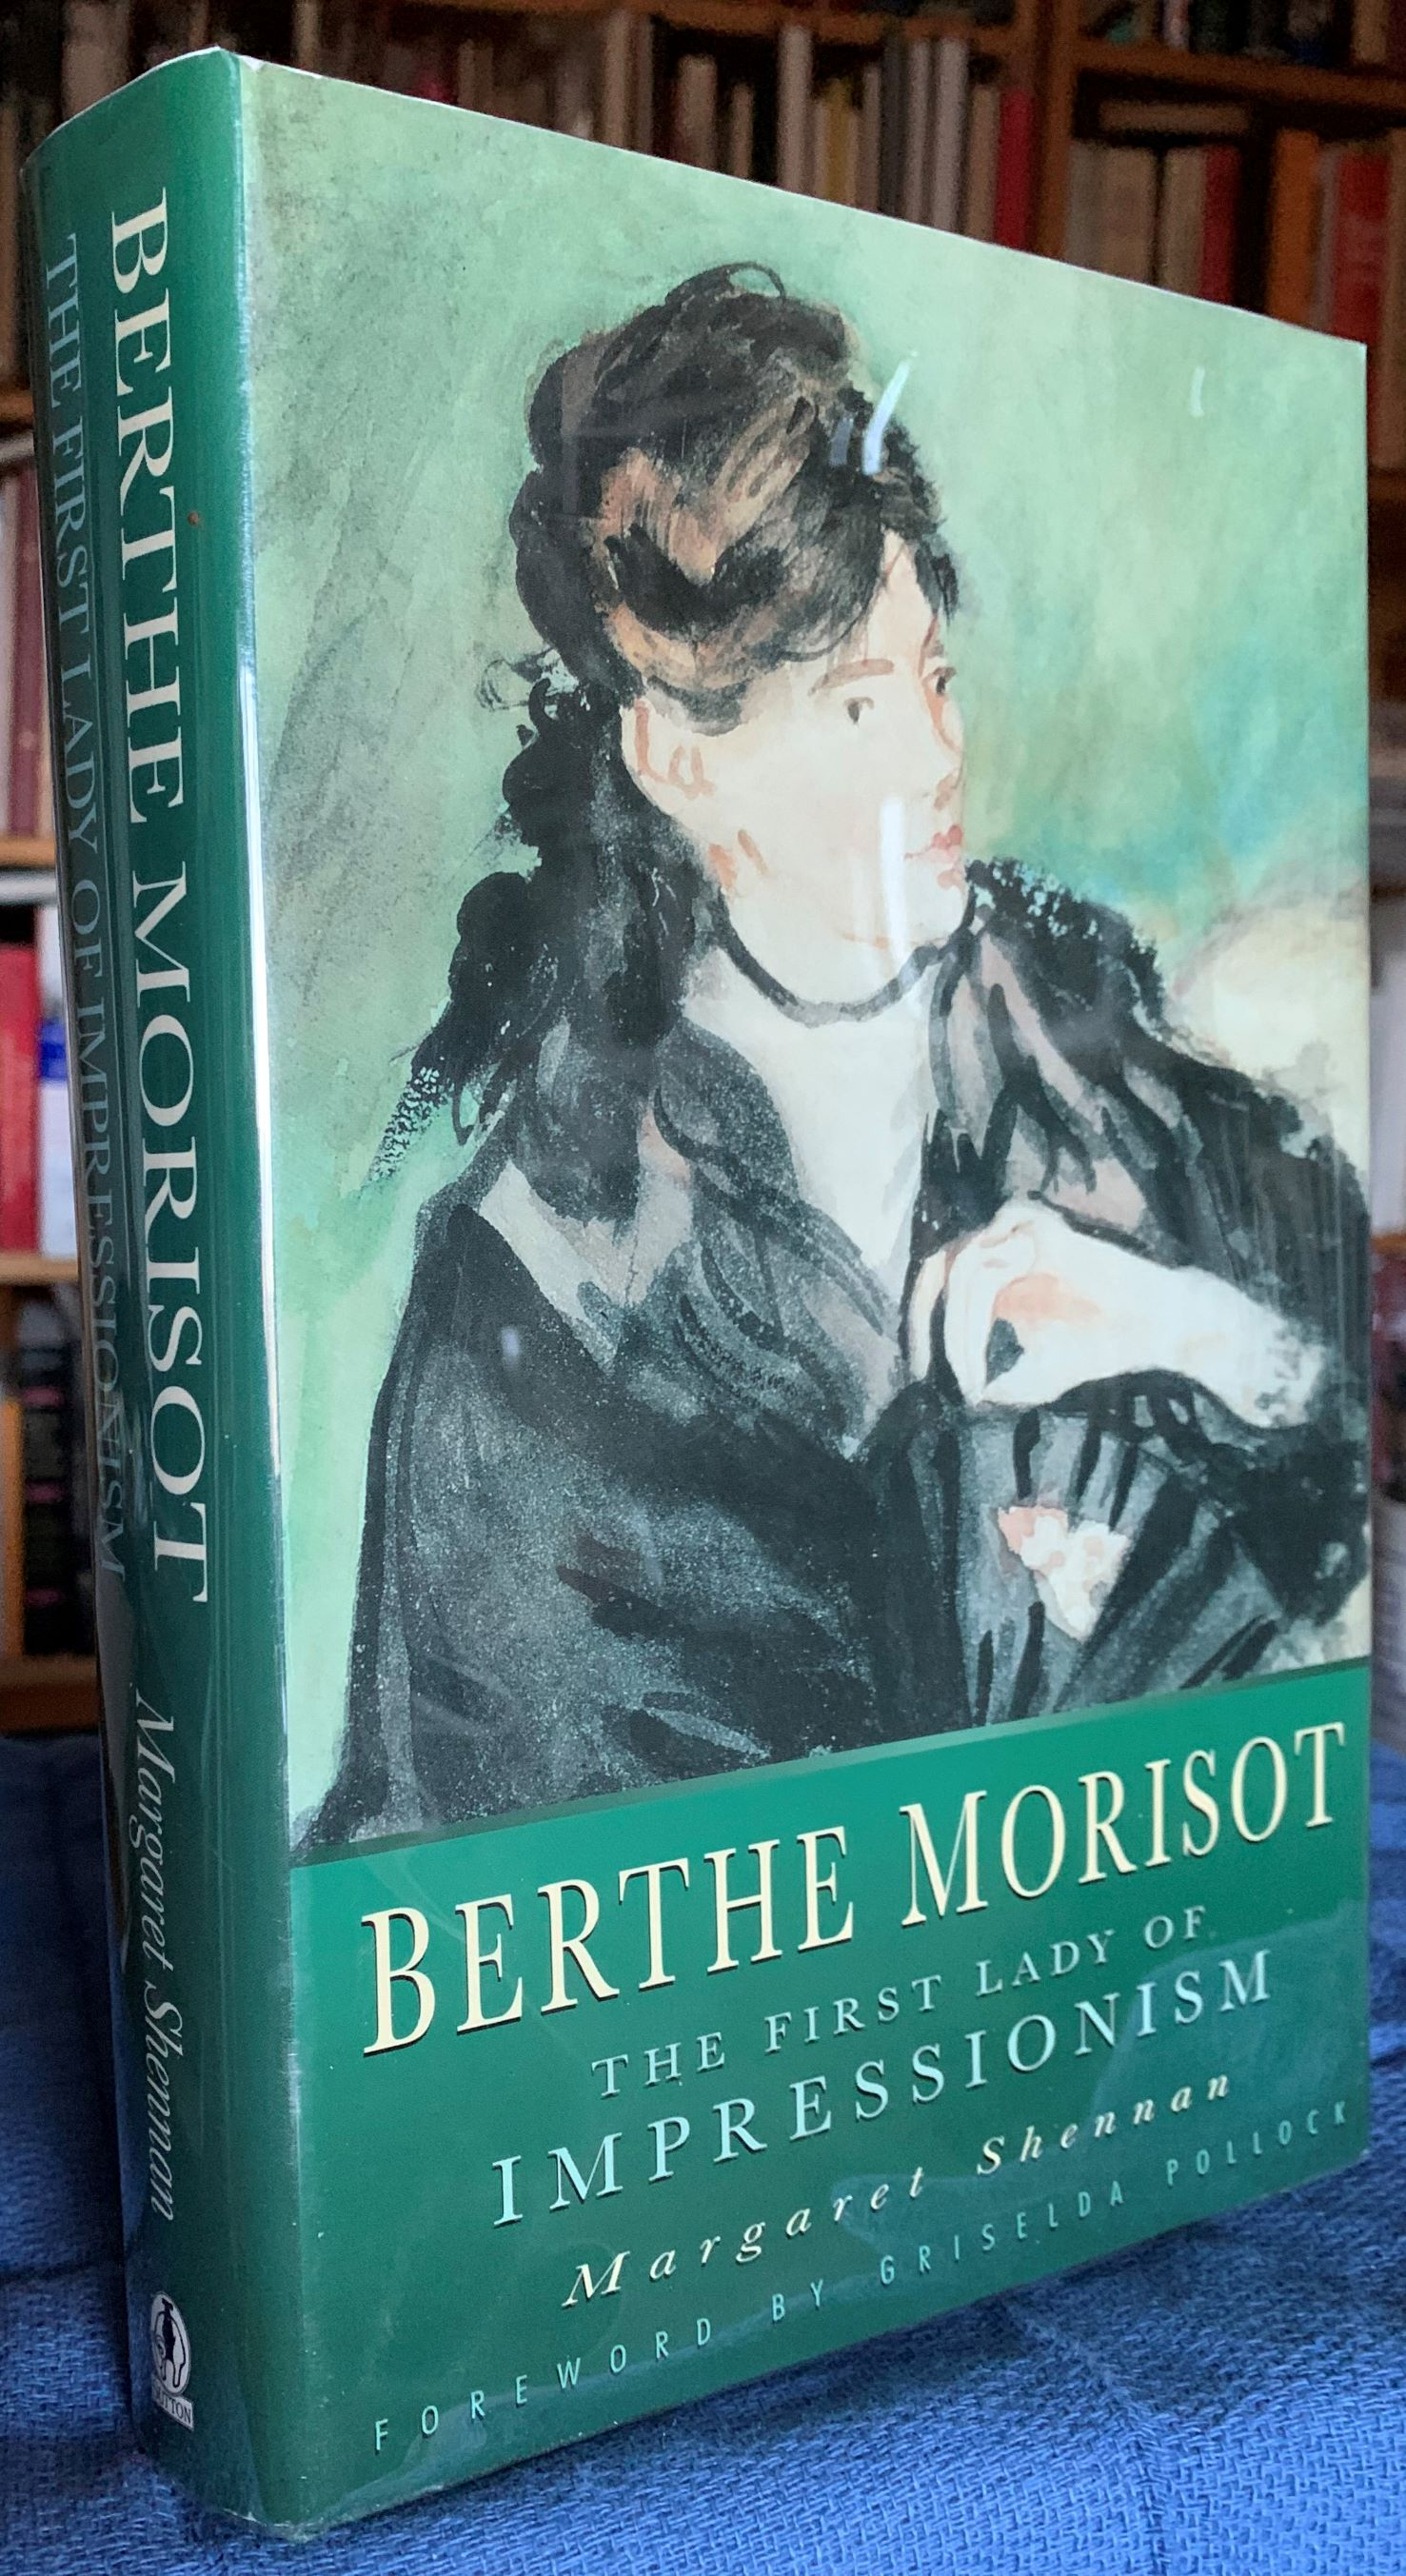 Image for Berthe Morisot, The First Lady of Impressonism.